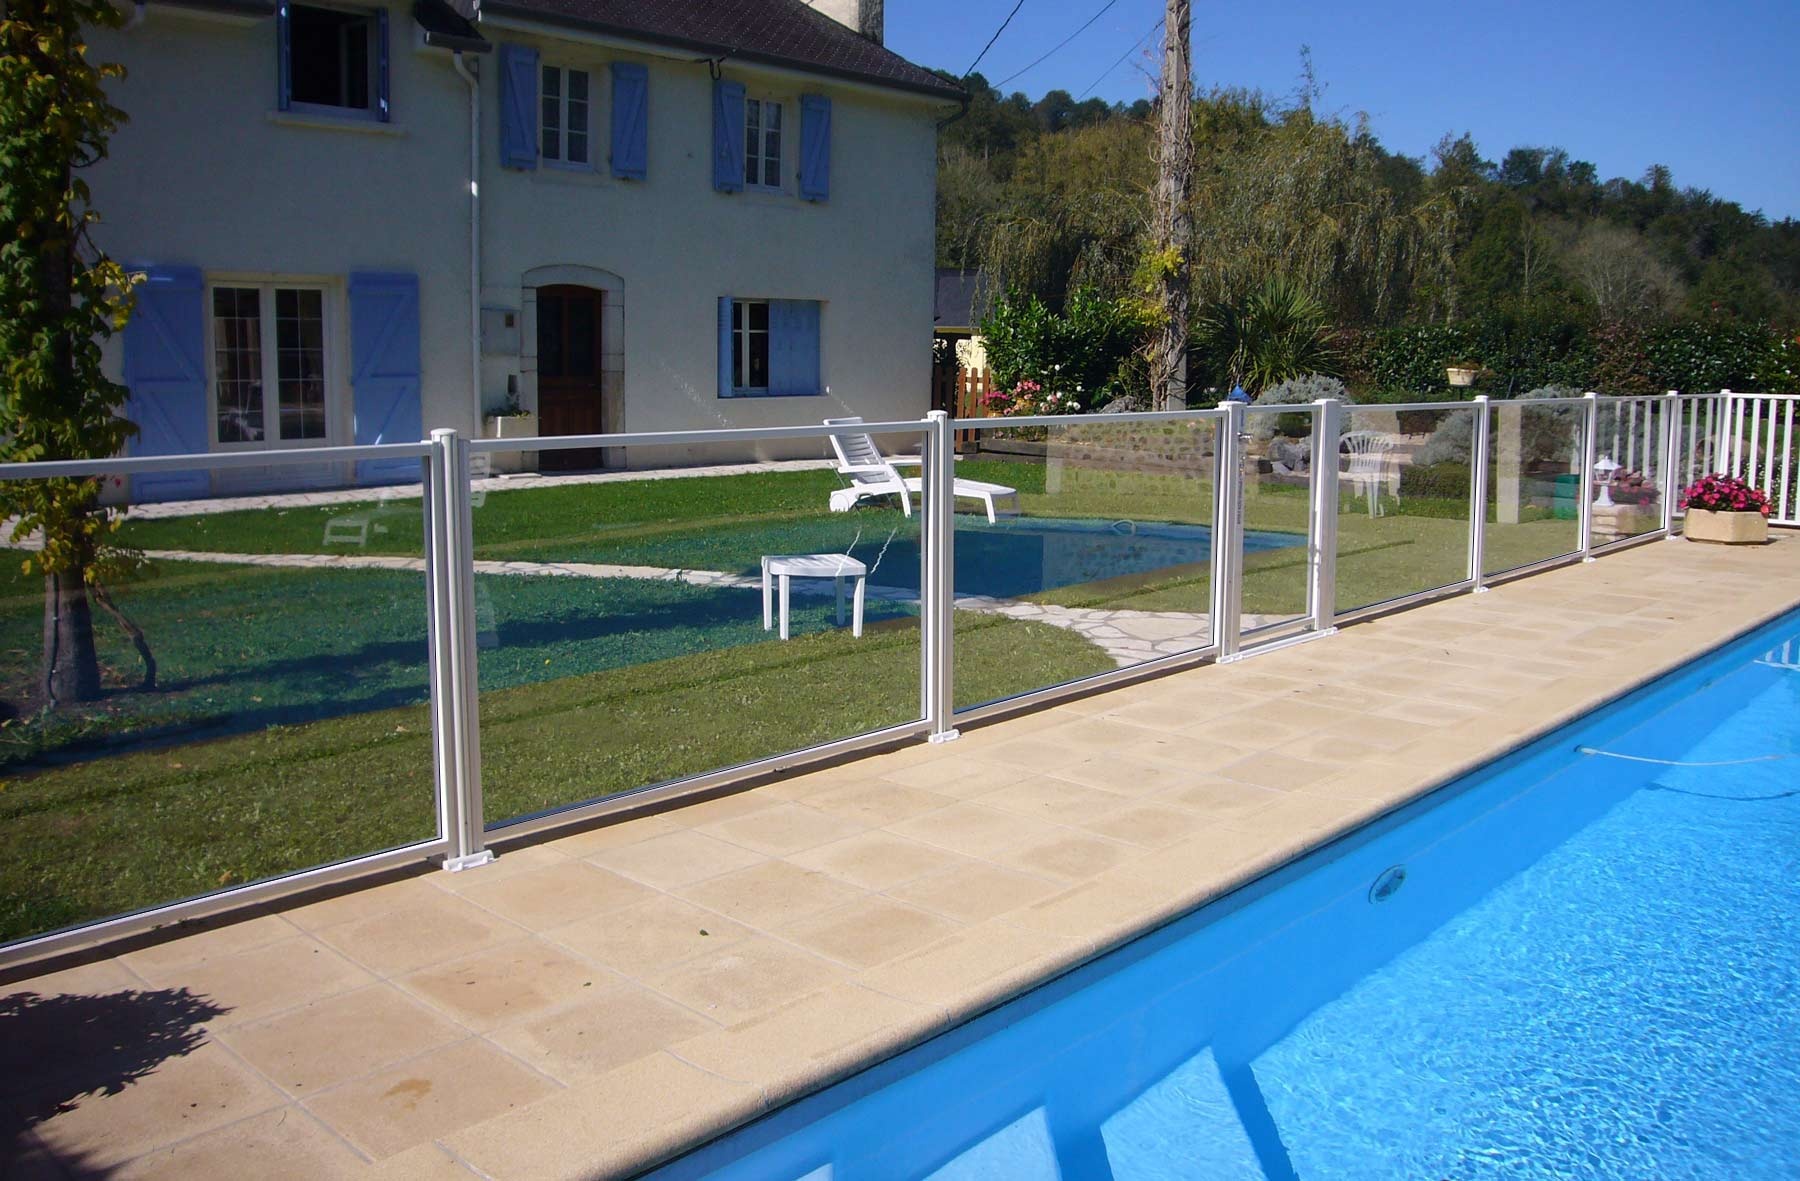 Les barri res en verre de protection d 39 atlantic barriere for Barriere de piscine